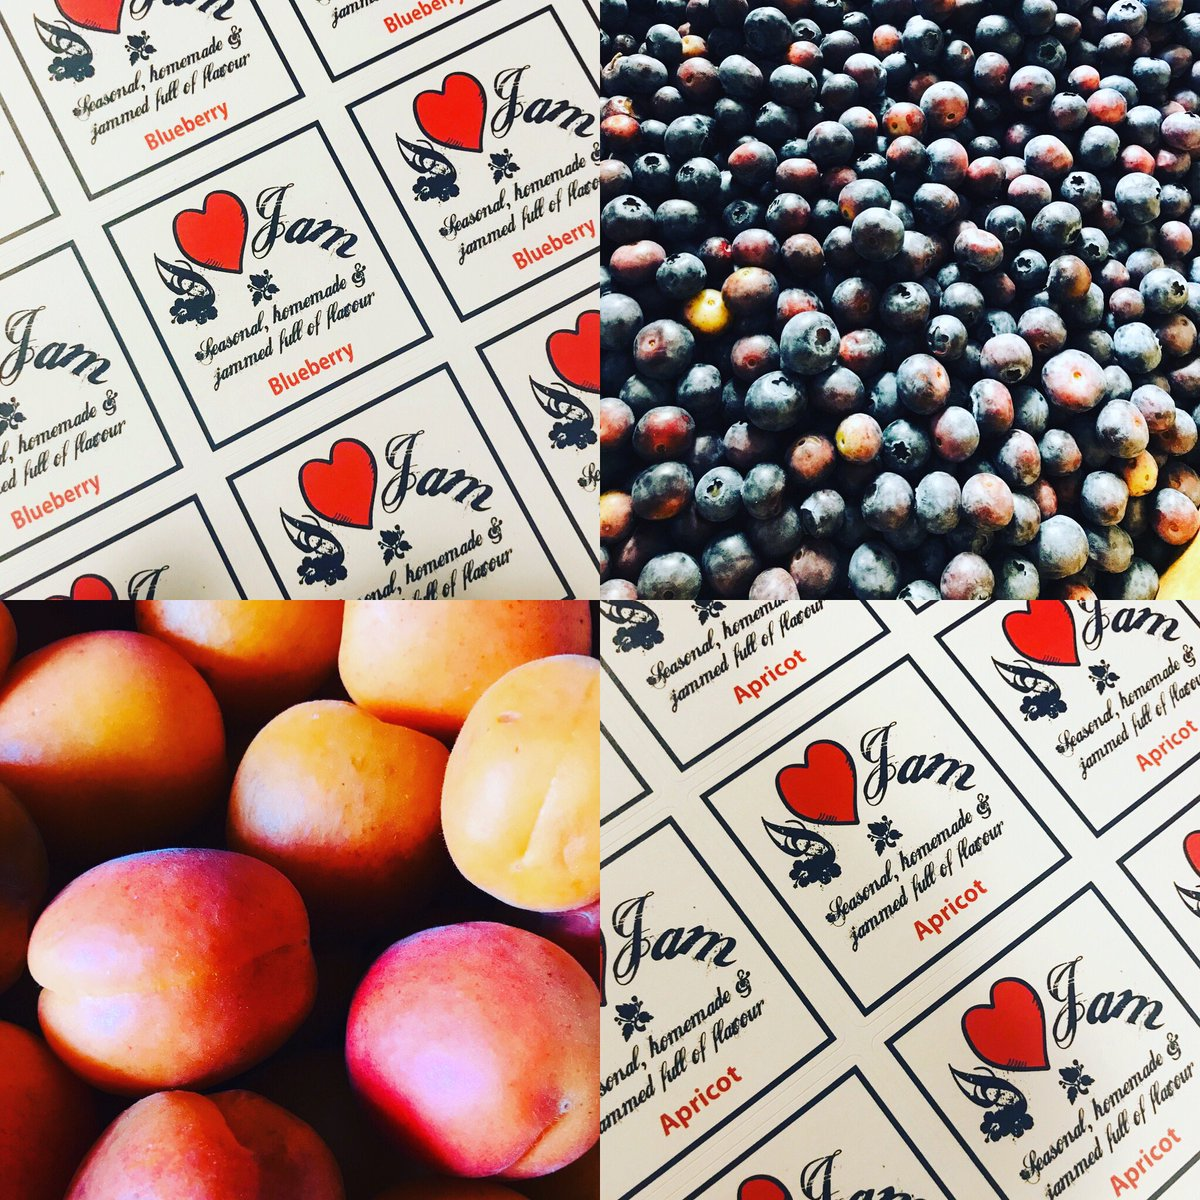 Summer - it's official!  #barricainthepark #jam #summerflavours #apricots #blueberriespic.twitter.com/gKBbHpc3y8